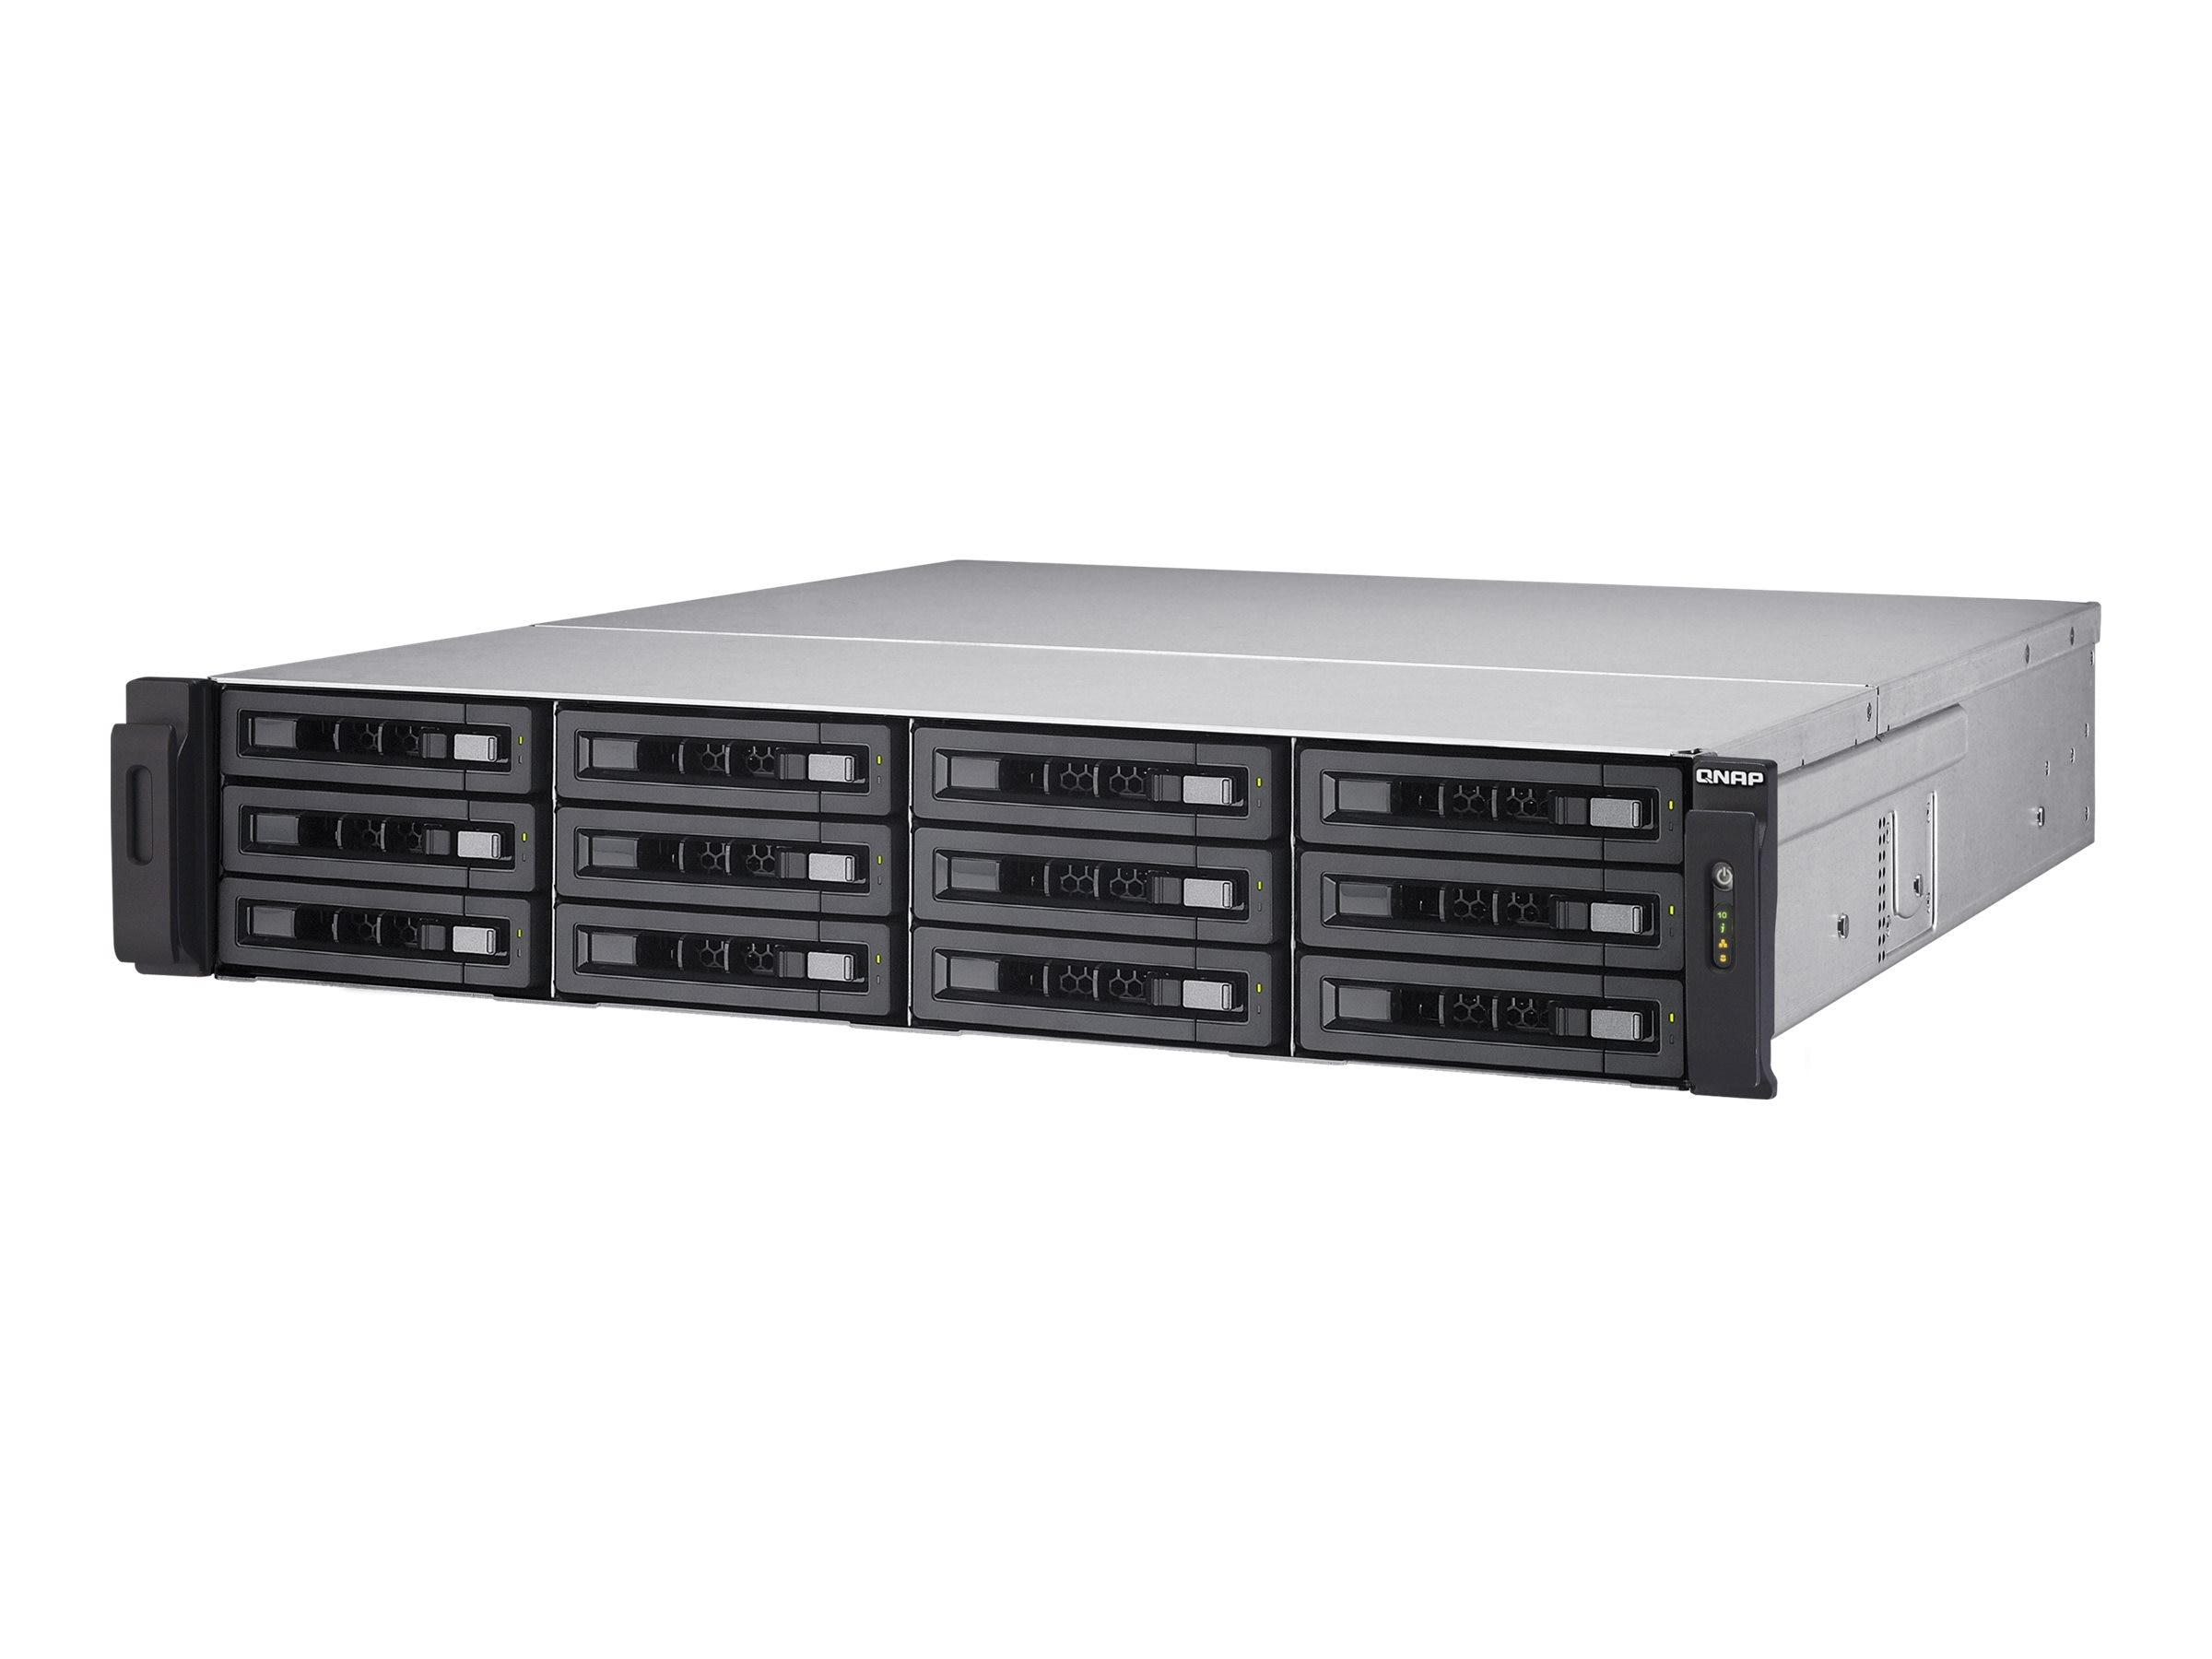 Qnap 12-Bay NAS & iSCSI  IPSAN 2U SAS 12Gb s SAS SATA 6Gb s 10G Storage w  Reduandant Power Supplies